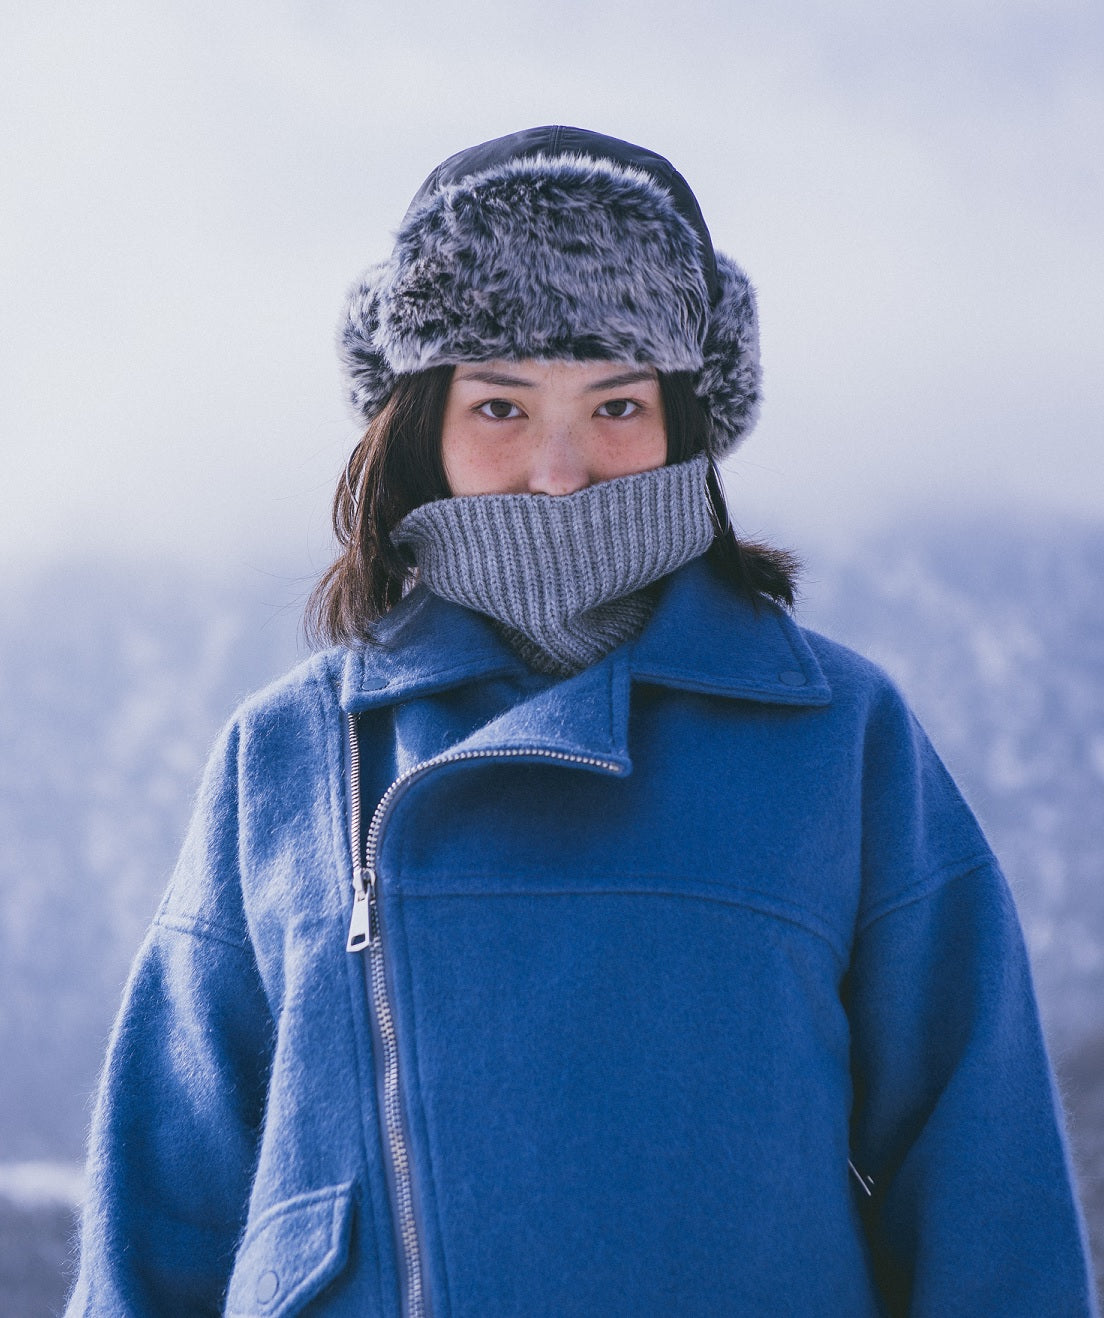 Wool, Fur, and Cashmere: Surviving Cold Temperatures Without Non-Vegan Materials